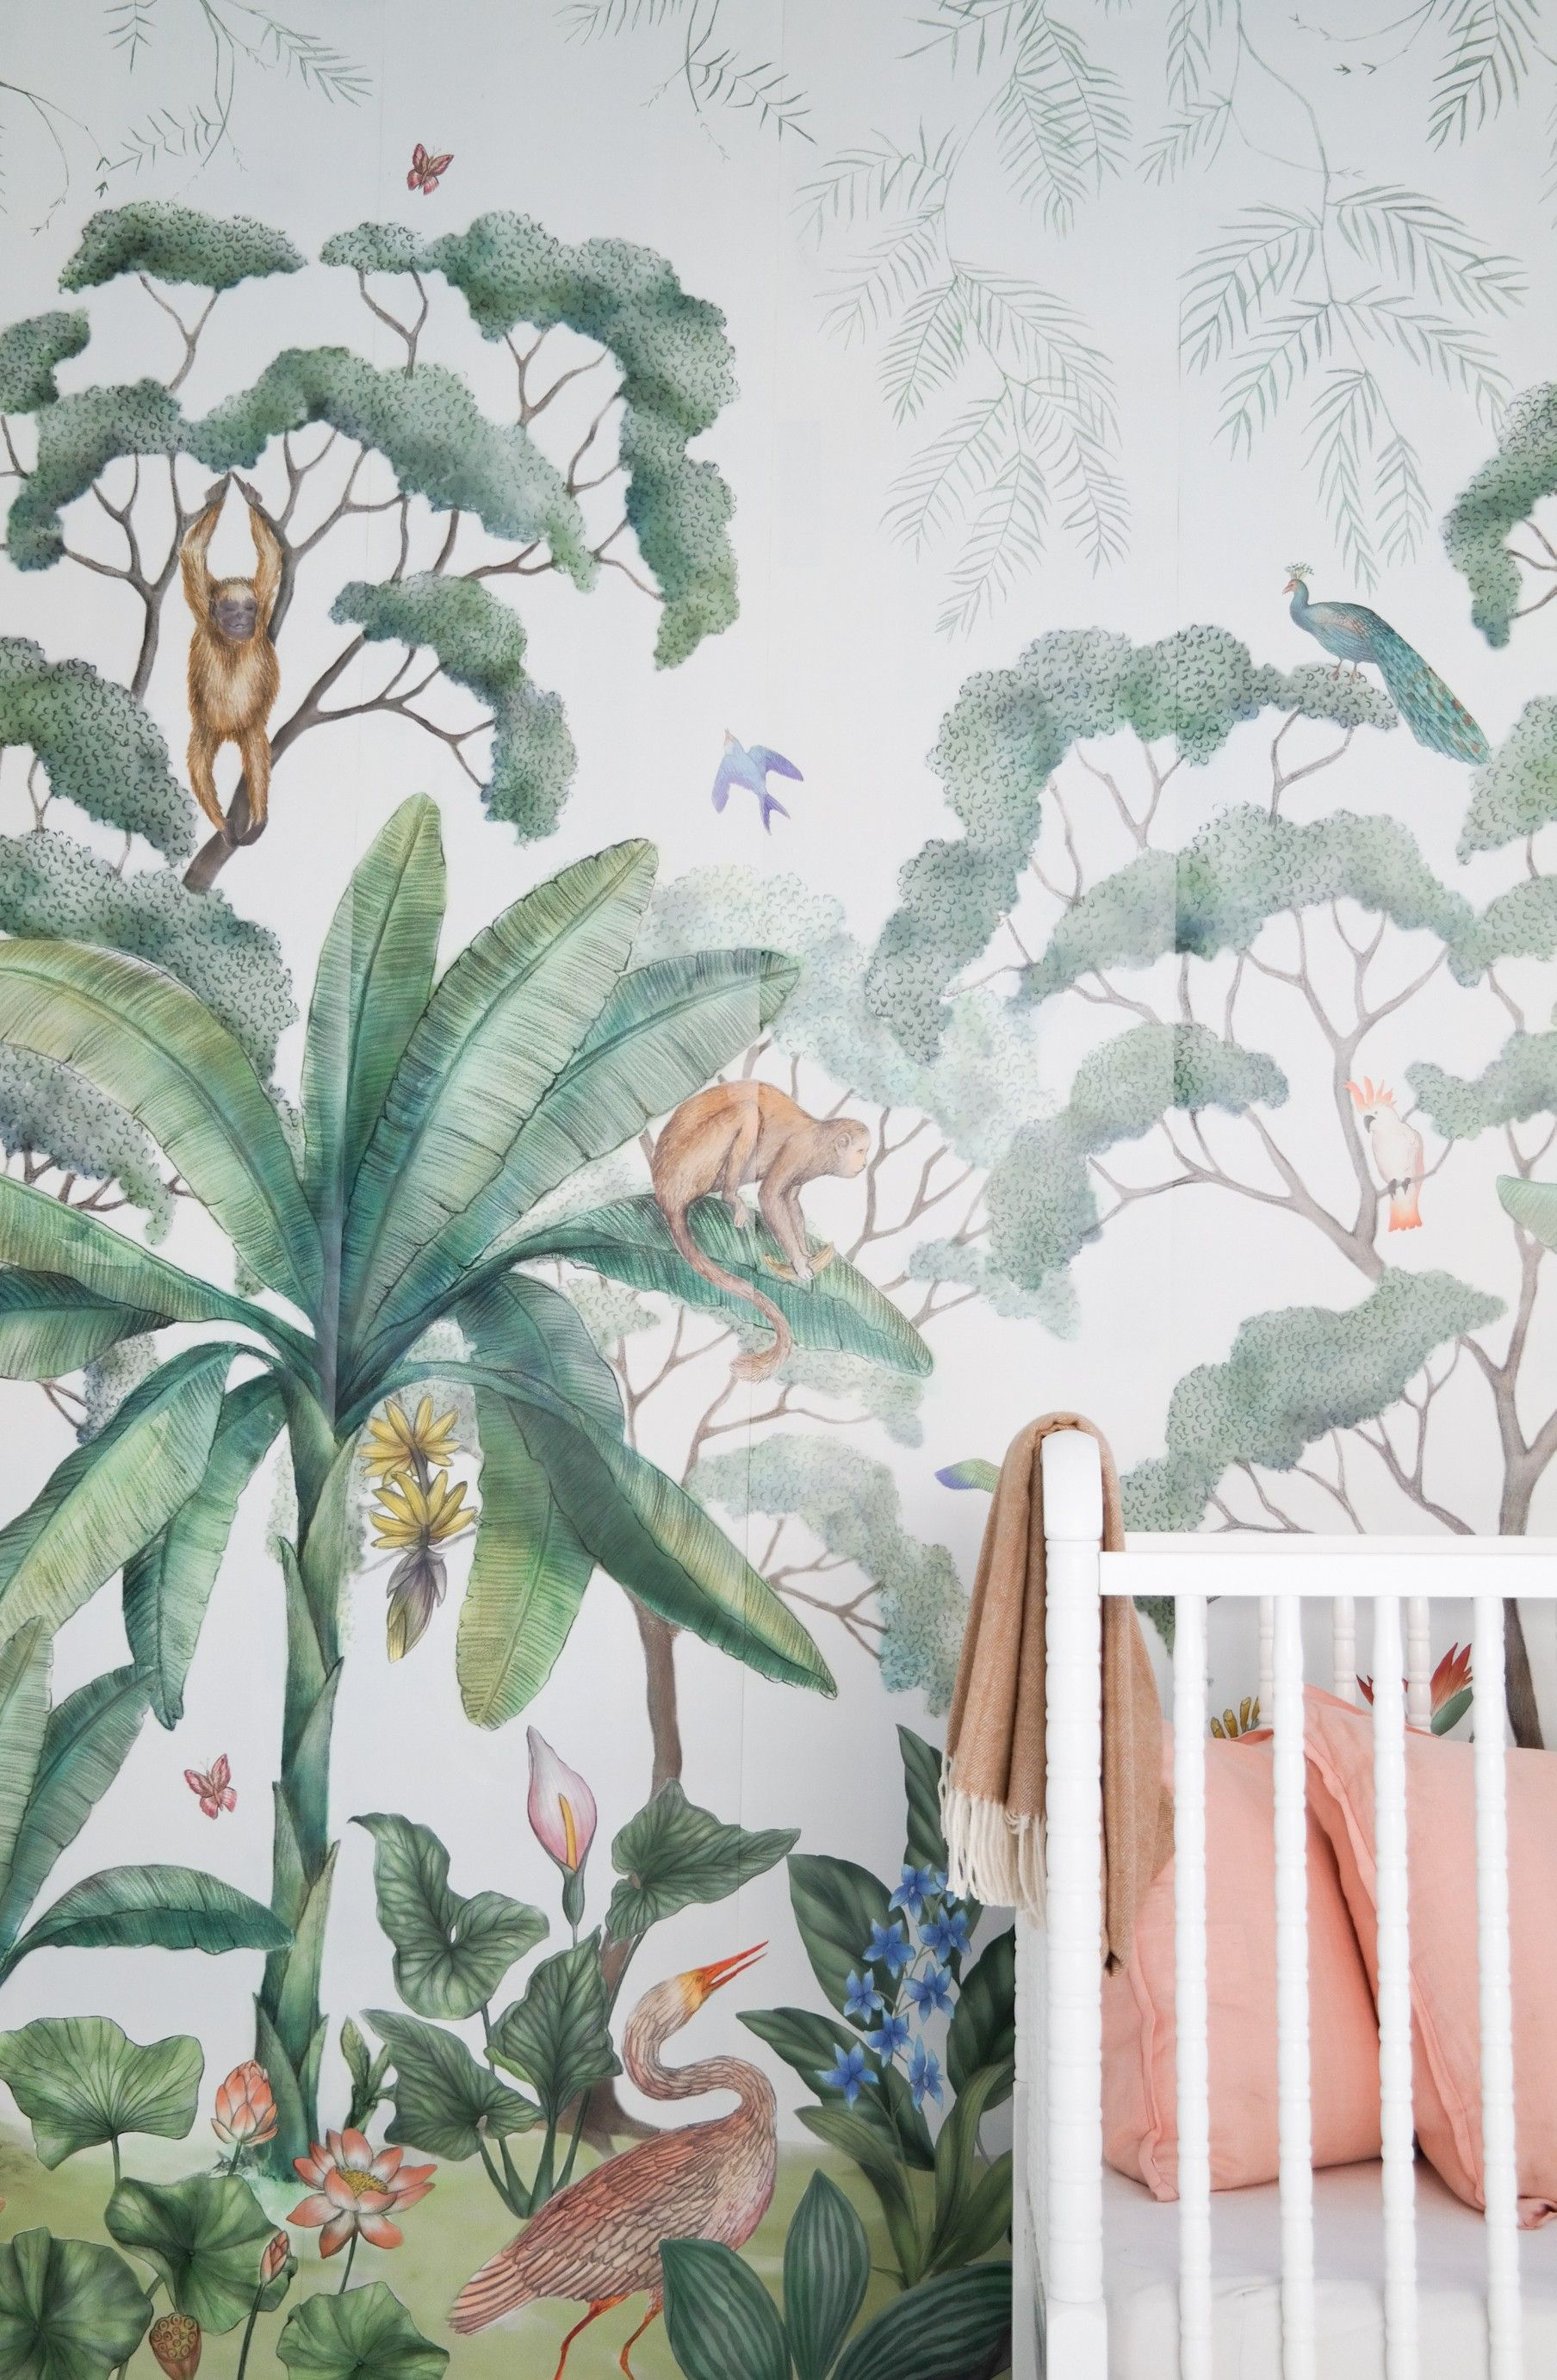 Jungle wallpaper mural wallpaper murals lush and for Baby jungle safari wall mural